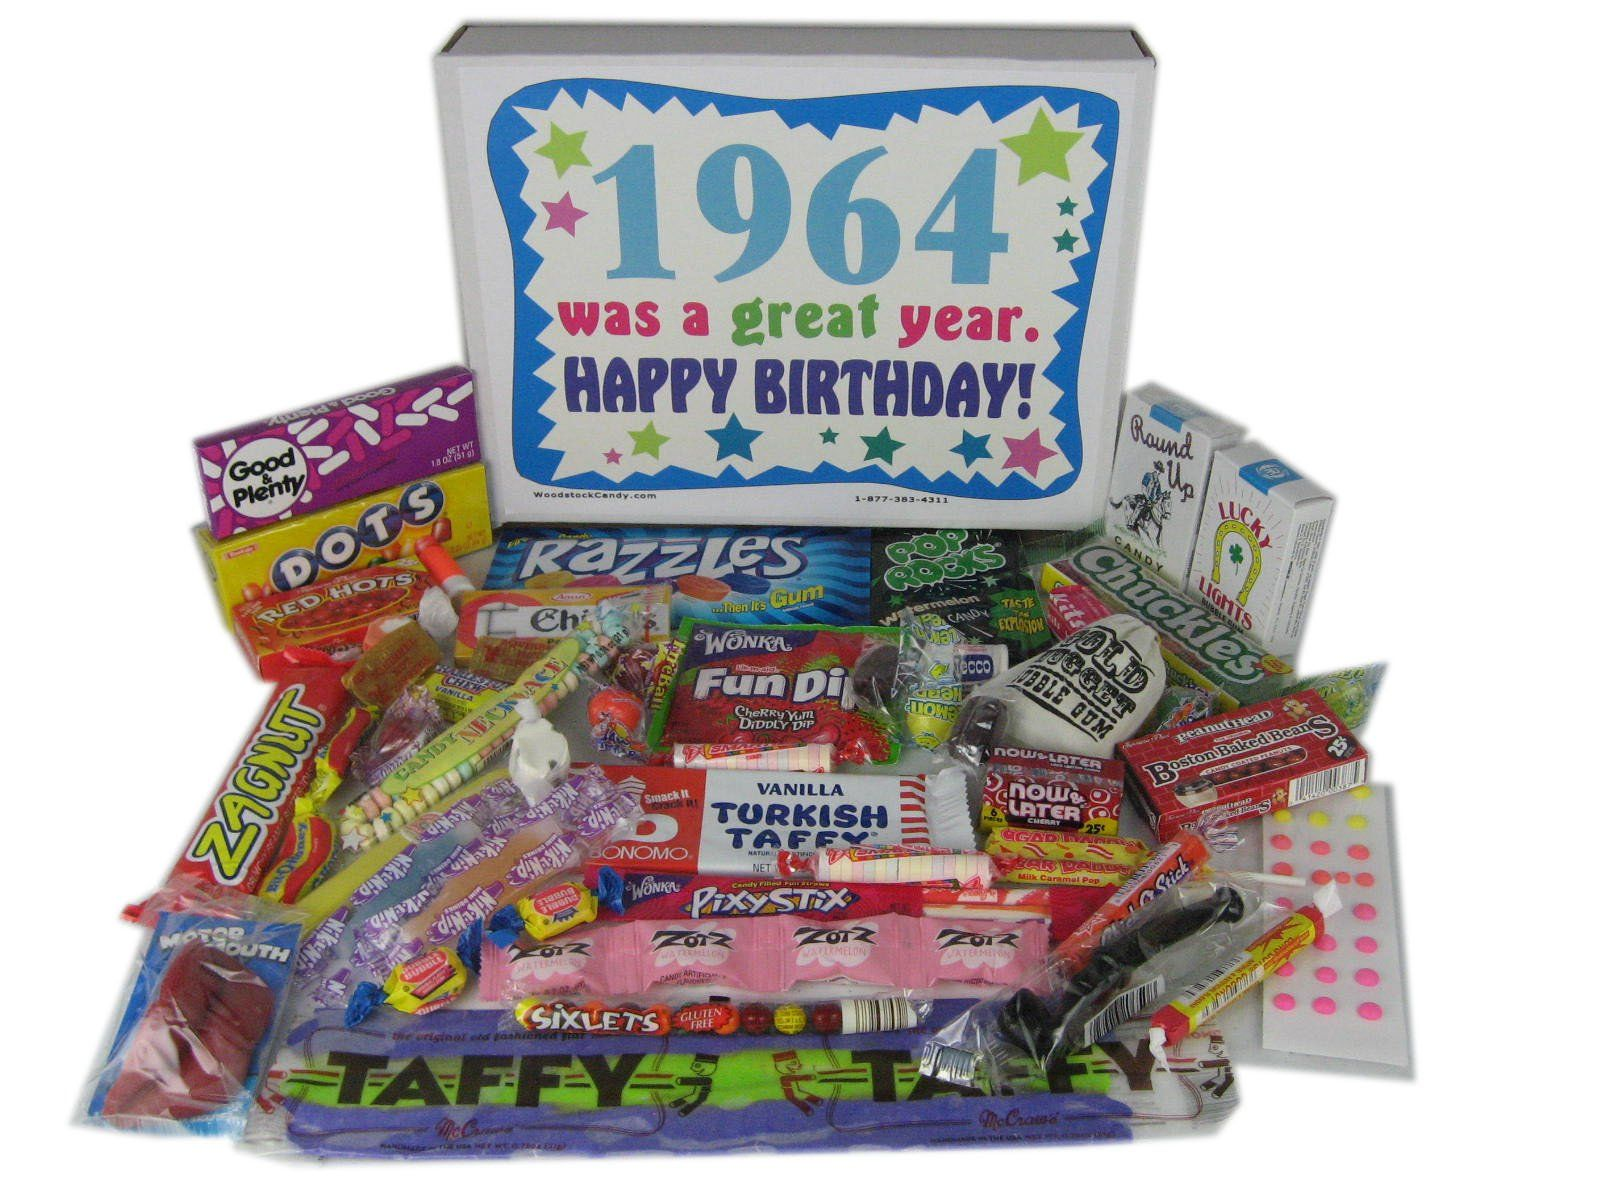 1964 50th Birthday Gift Basket Box Retro Nostalgic Candy From ChildhoodAmazonGrocery Gourmet Food